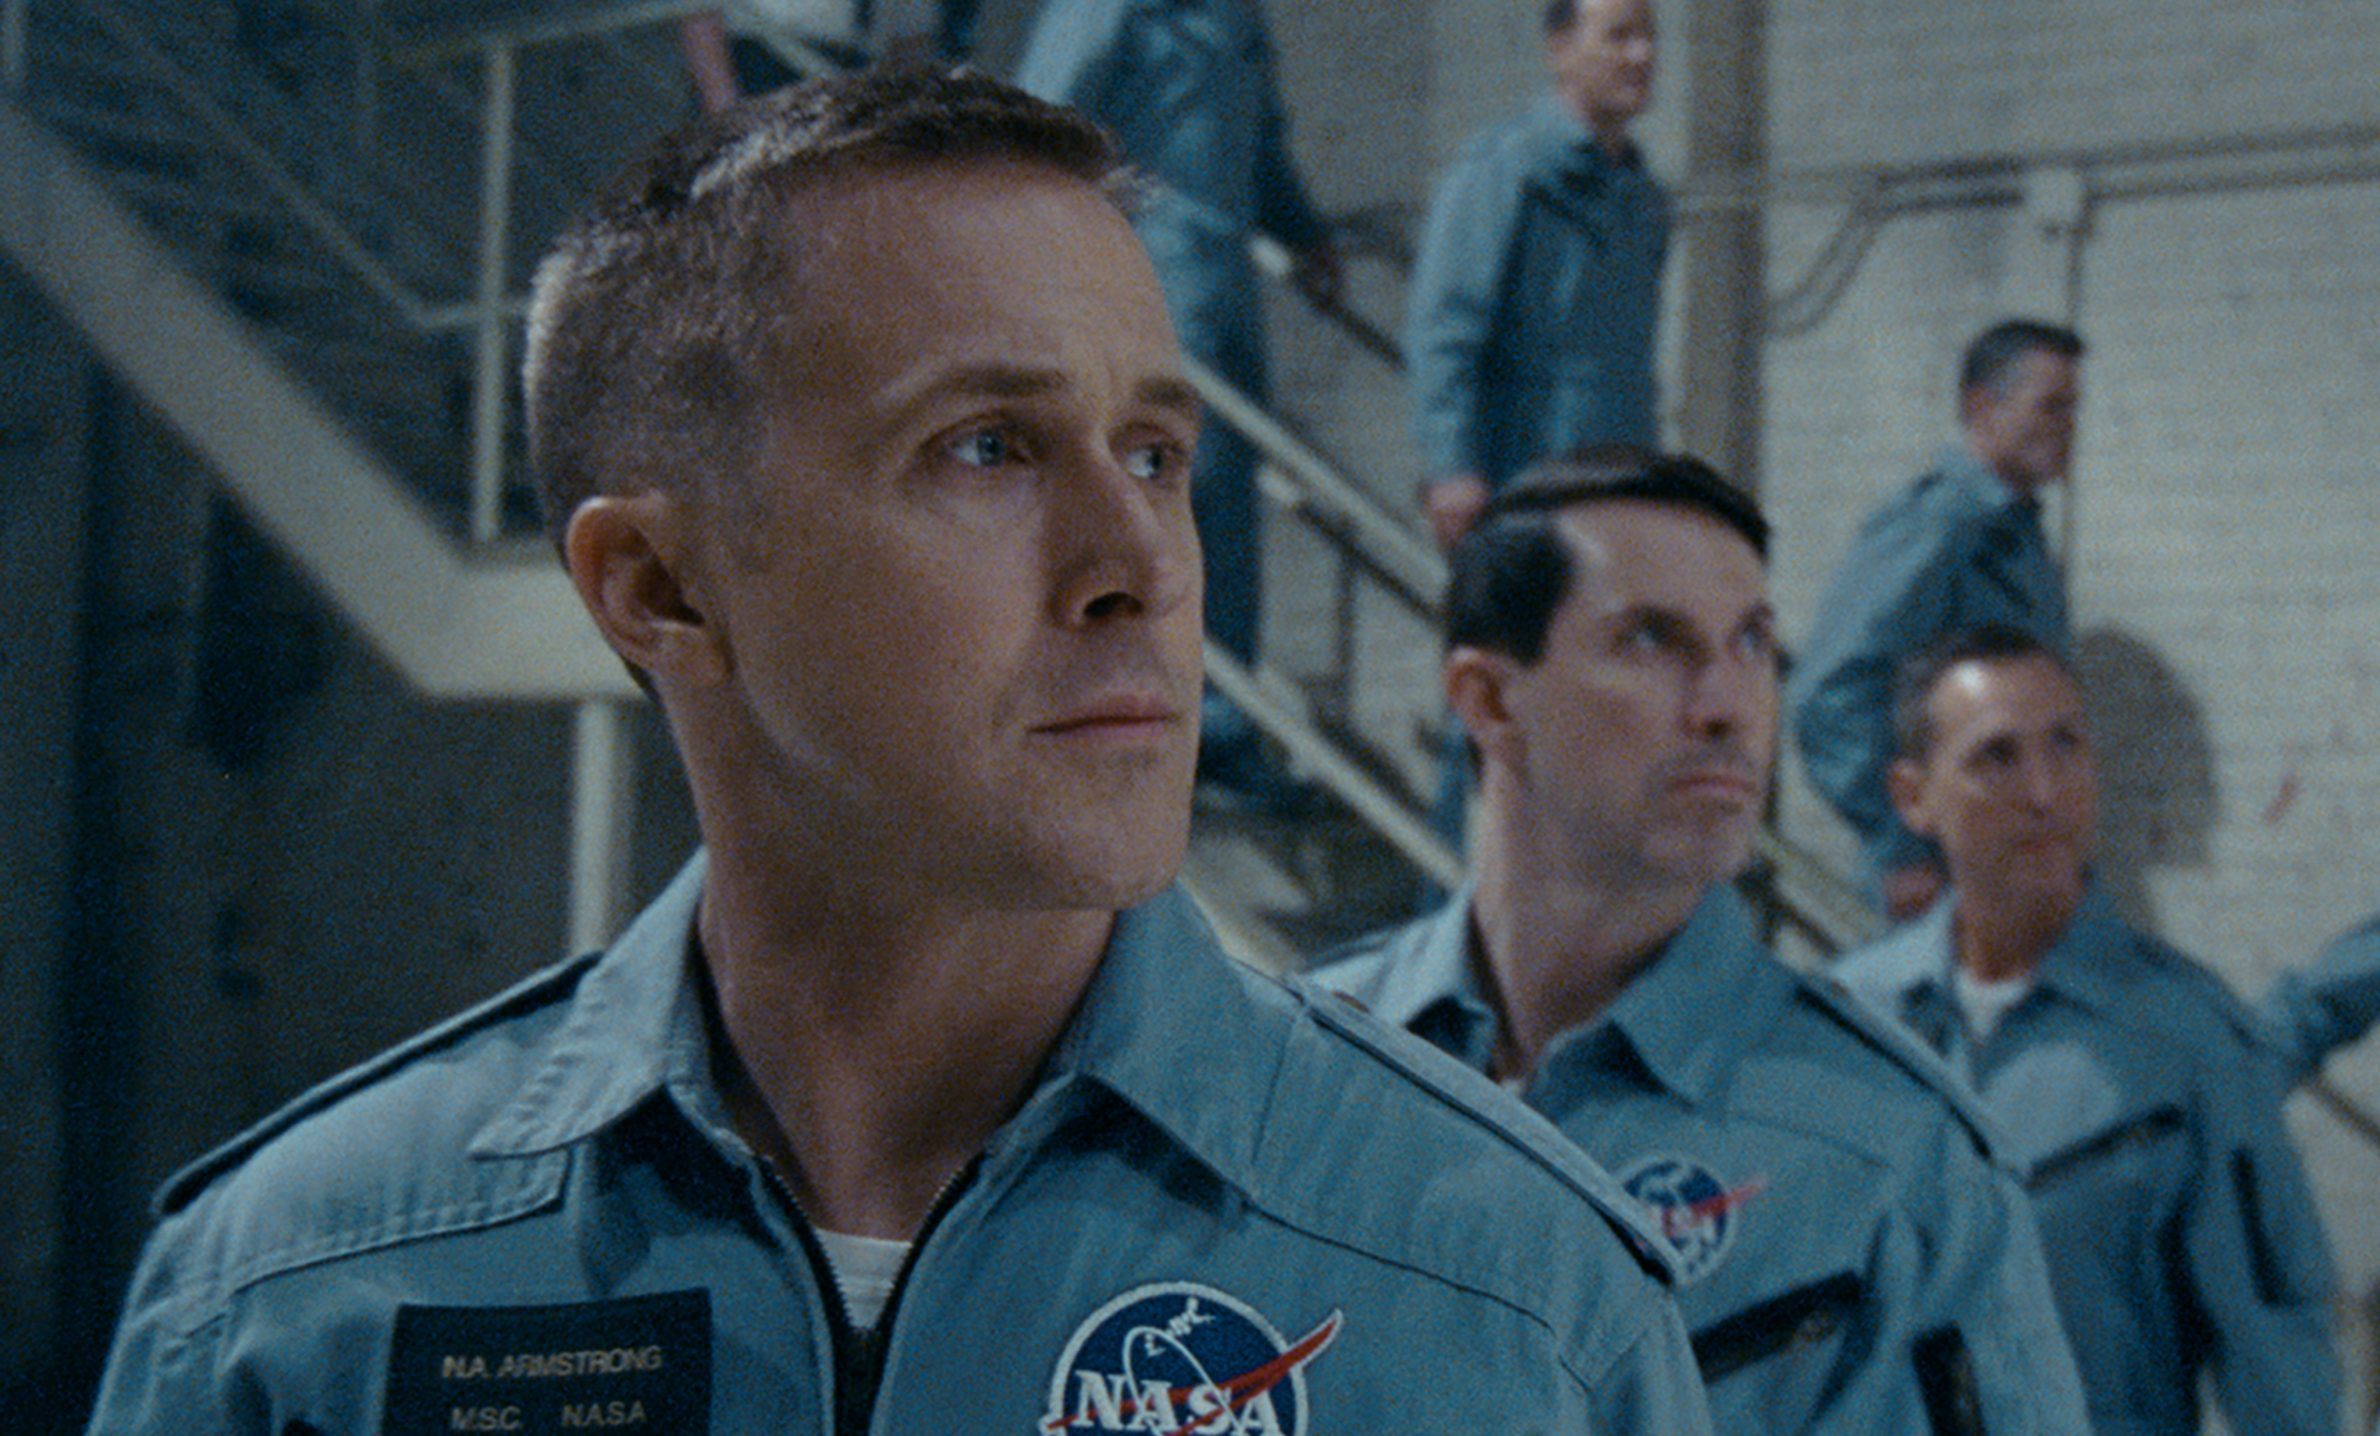 'First Man' Is Far More Authentic Than Your Average Biopic, But Most Audiences Don't Know That